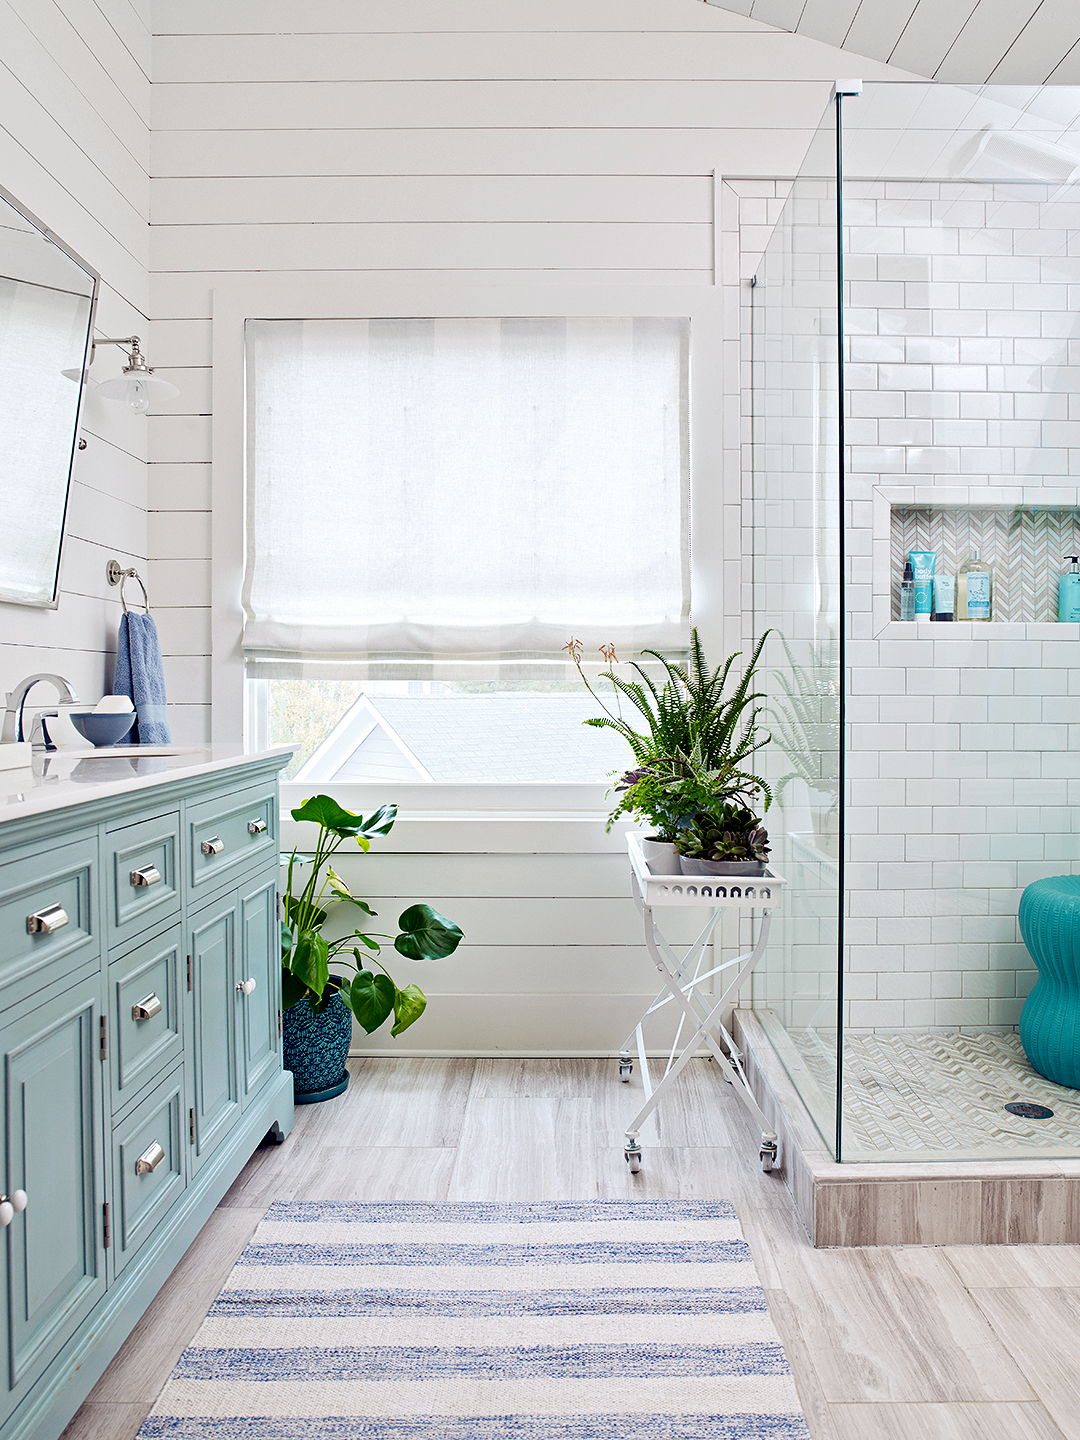 walk in shower in white and seafoam bathroom with plants